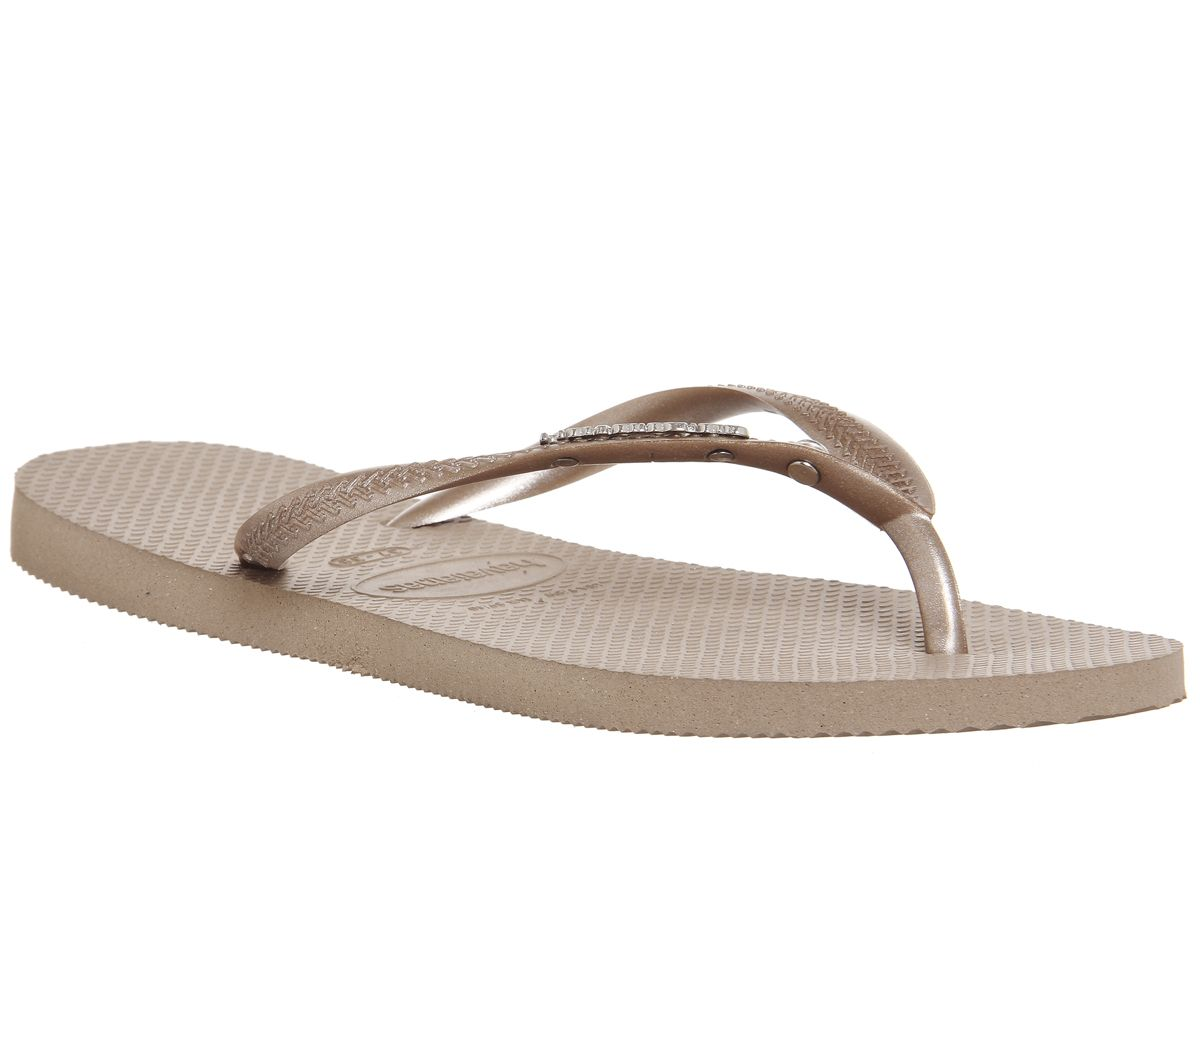 0b67ab55e Havaianas Slim Metal Crystal Flip Flops Rose Gold - Sandals